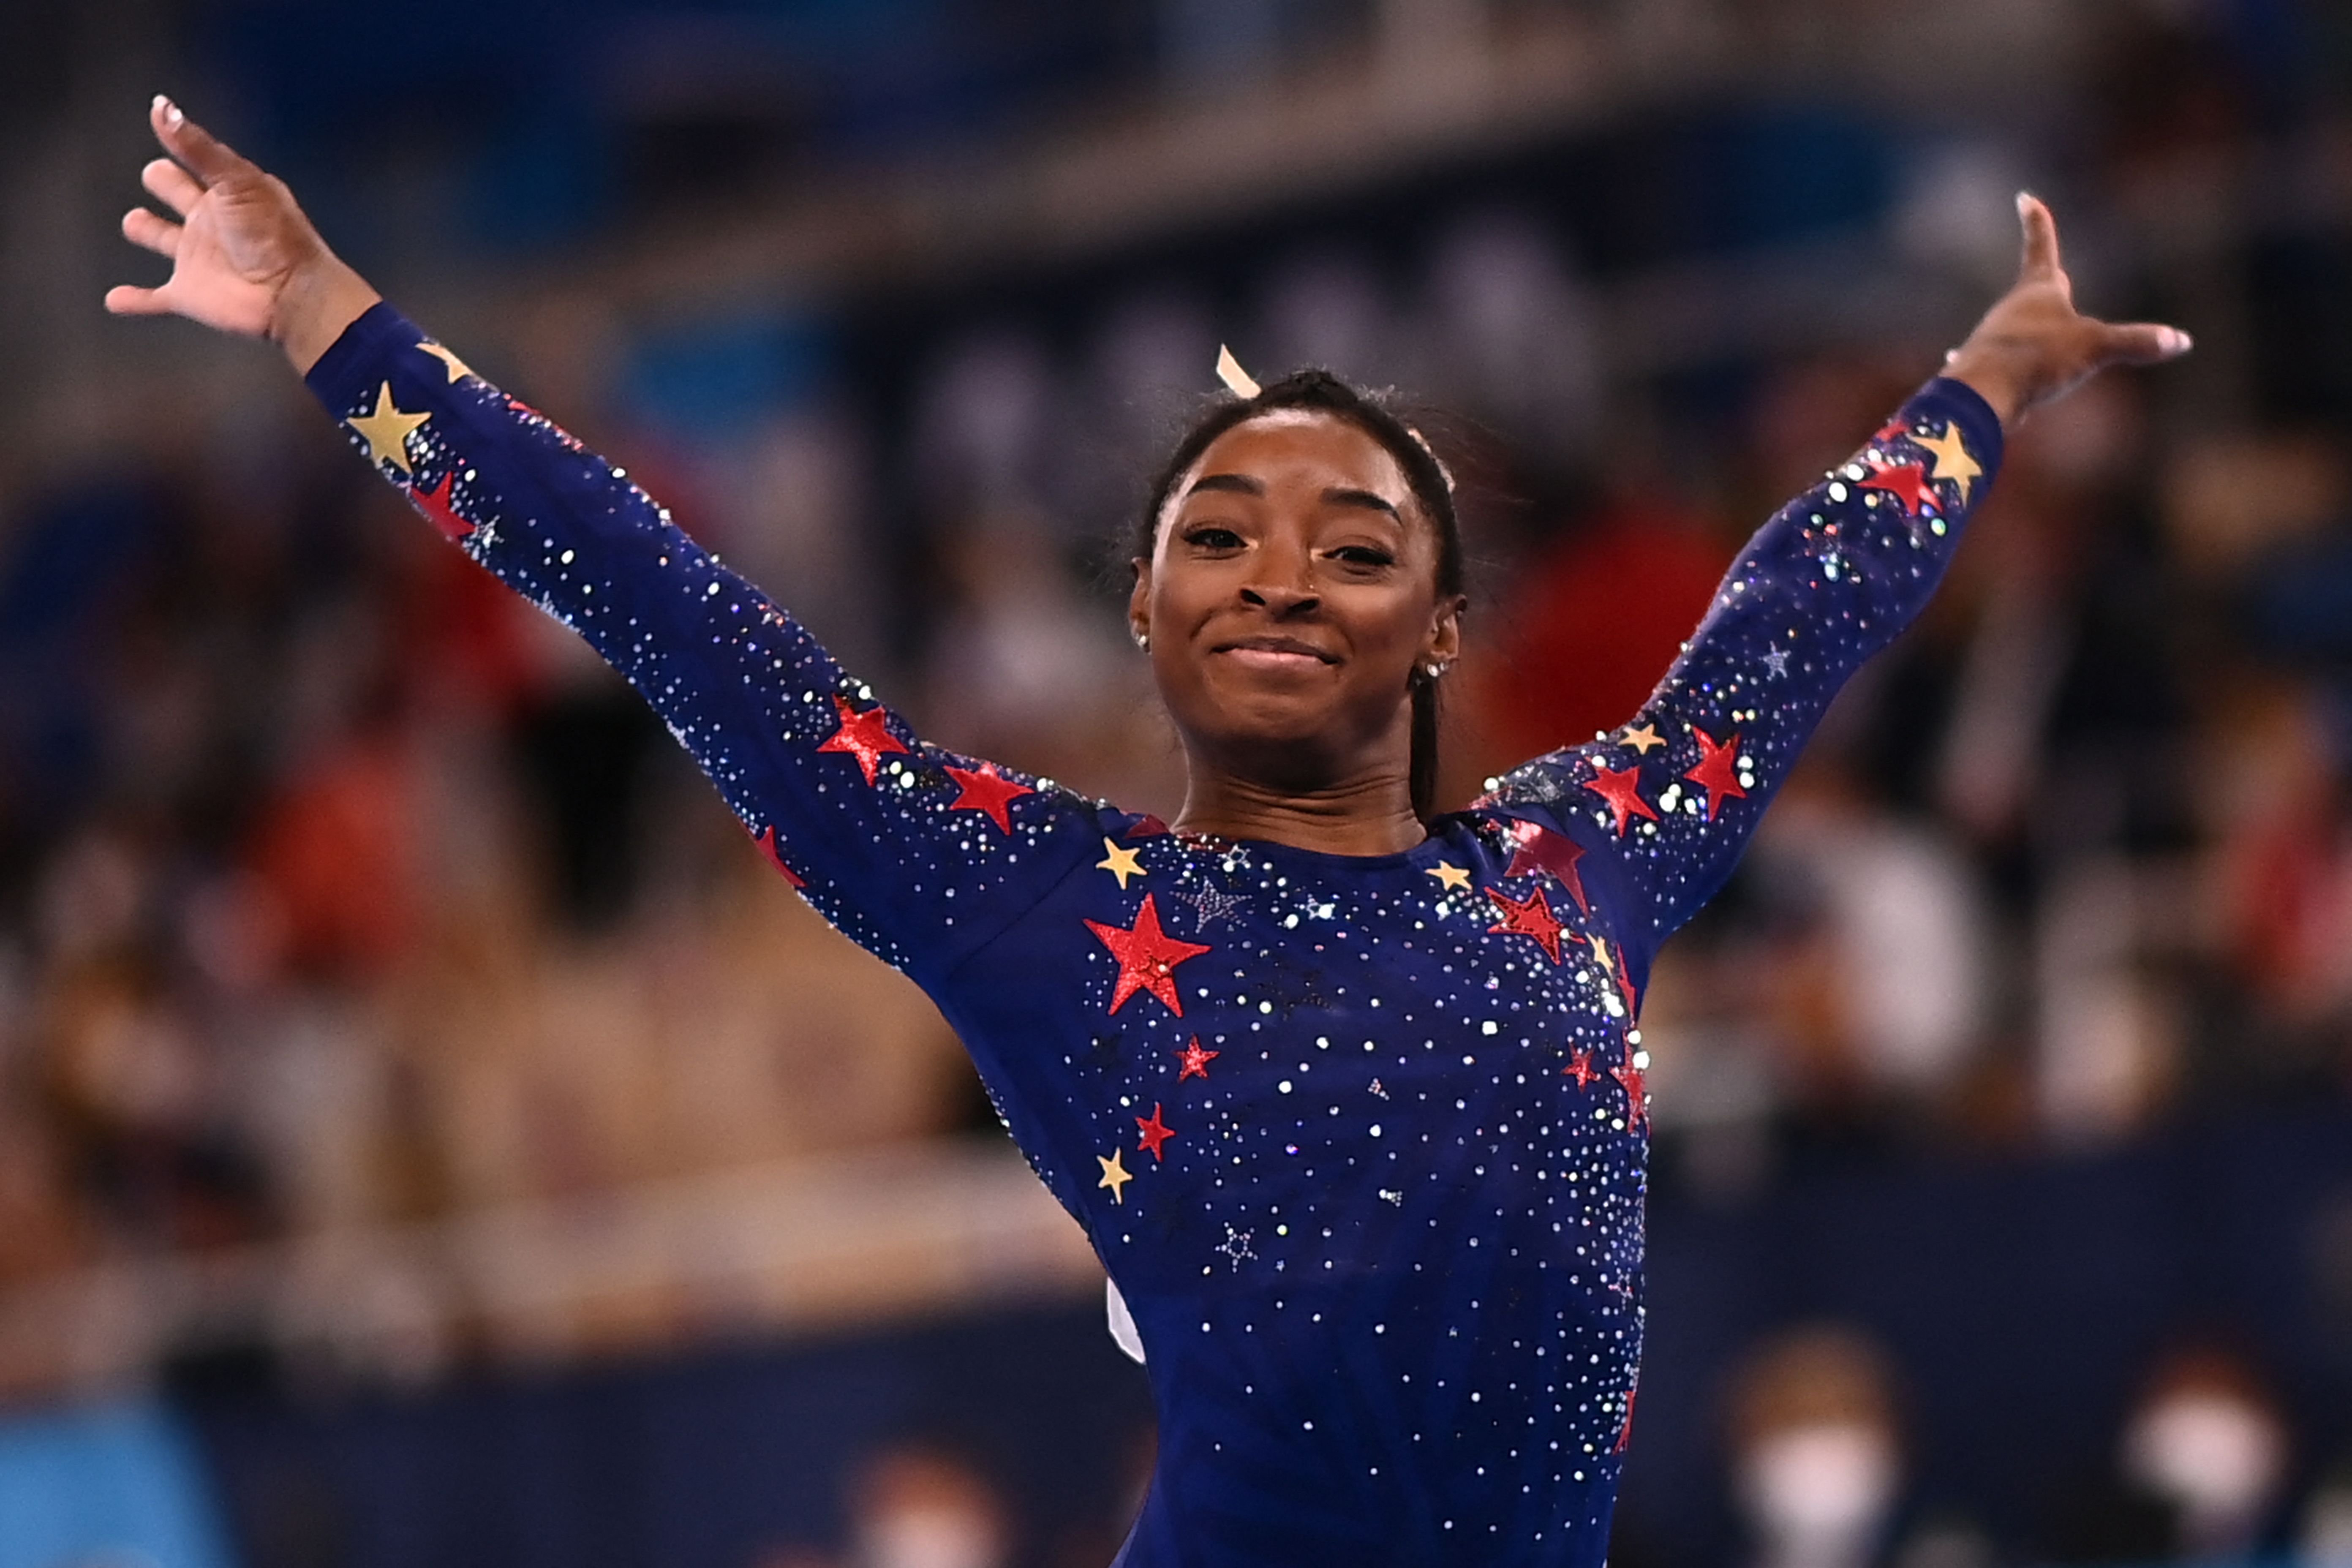 Simone Biles will return for balance beam final after grappling with the 'twisties'